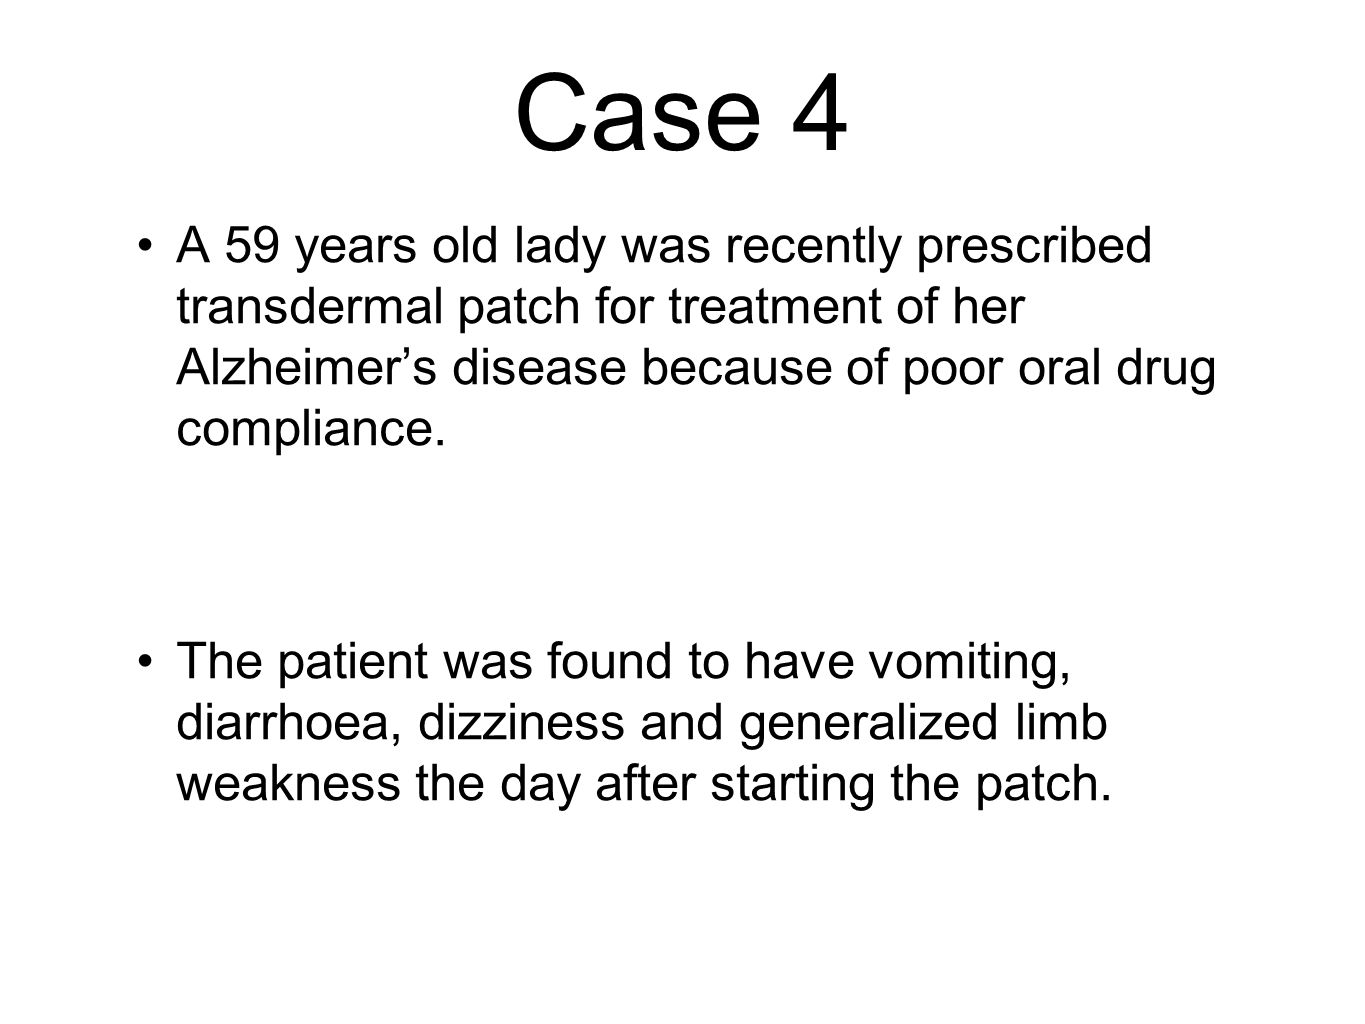 Case 4 A 59 years old lady was recently prescribed transdermal patch for treatment of her Alzheimers disease because of poor oral drug compliance.